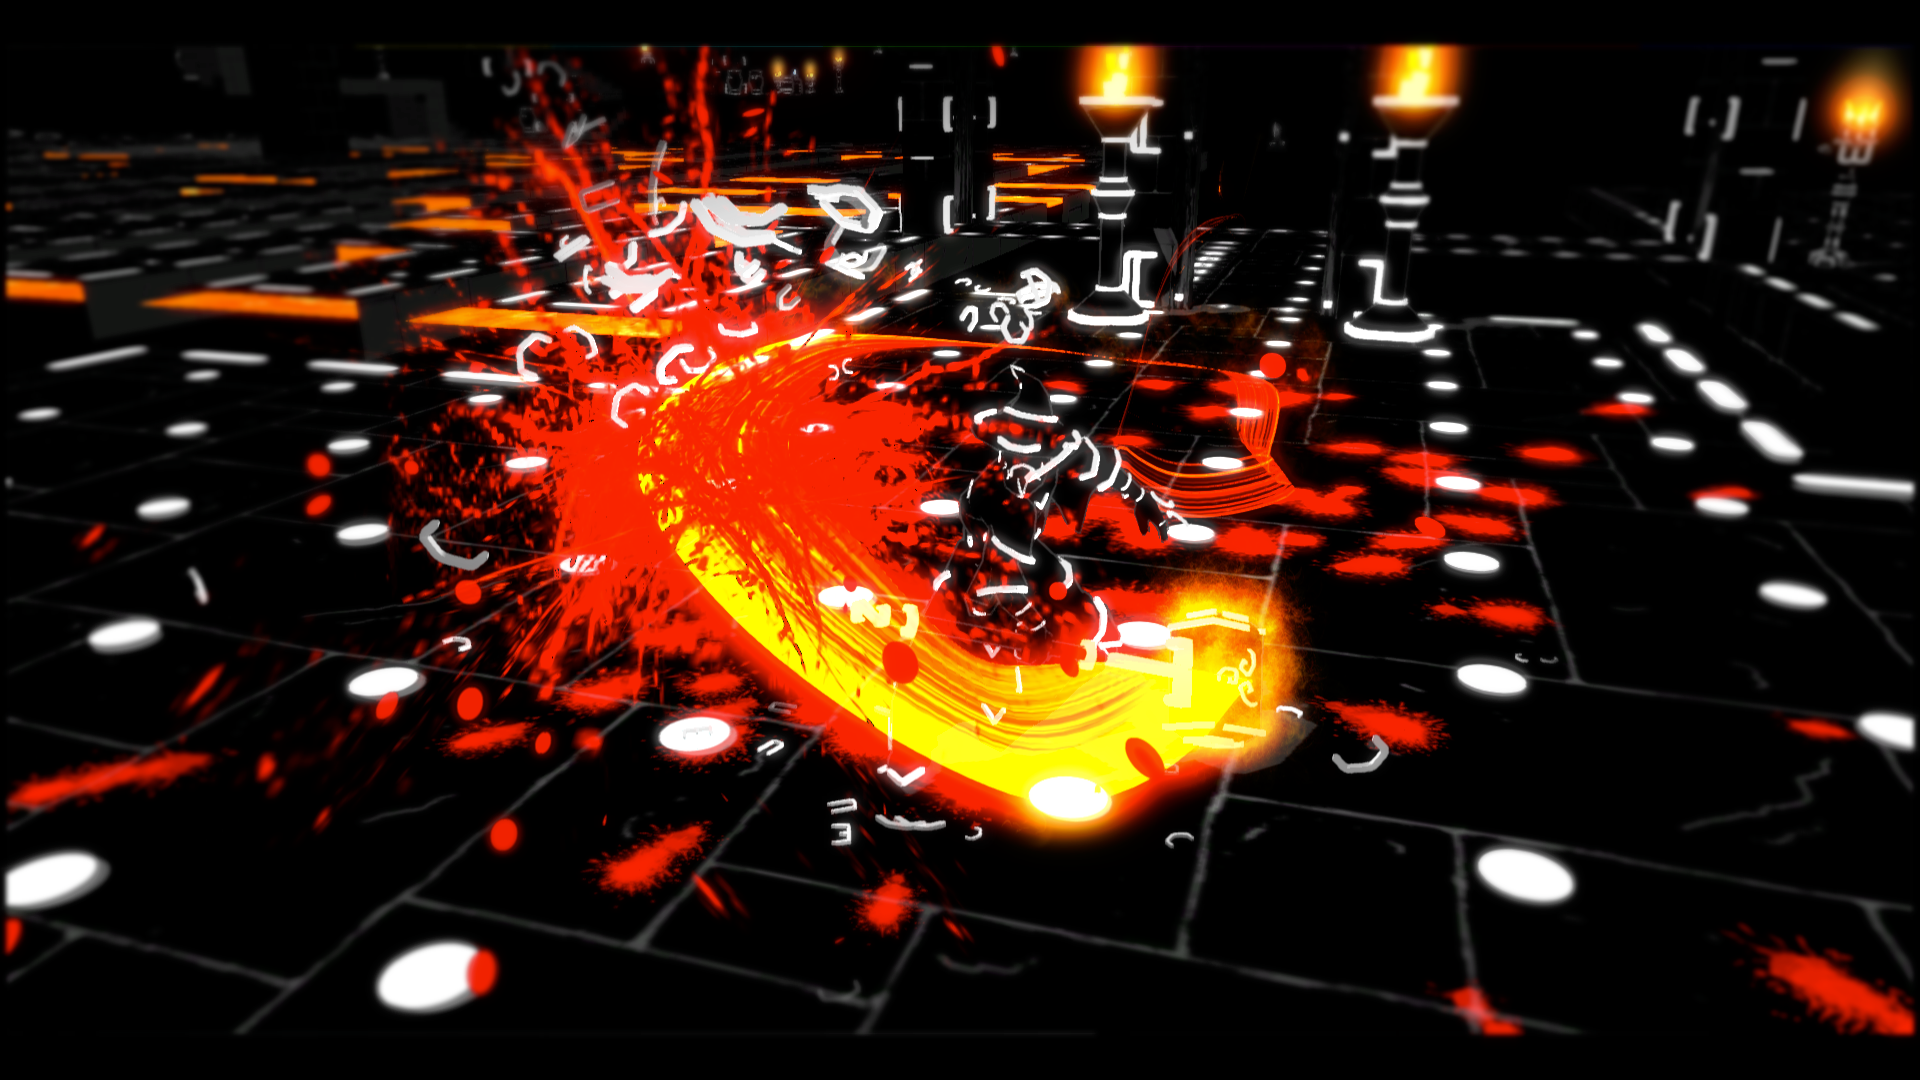 A screenshot from the game Brutal. It's a smear of glow and bloodspats on a black and white dungeon designed to mimic a text interface, but 3d.